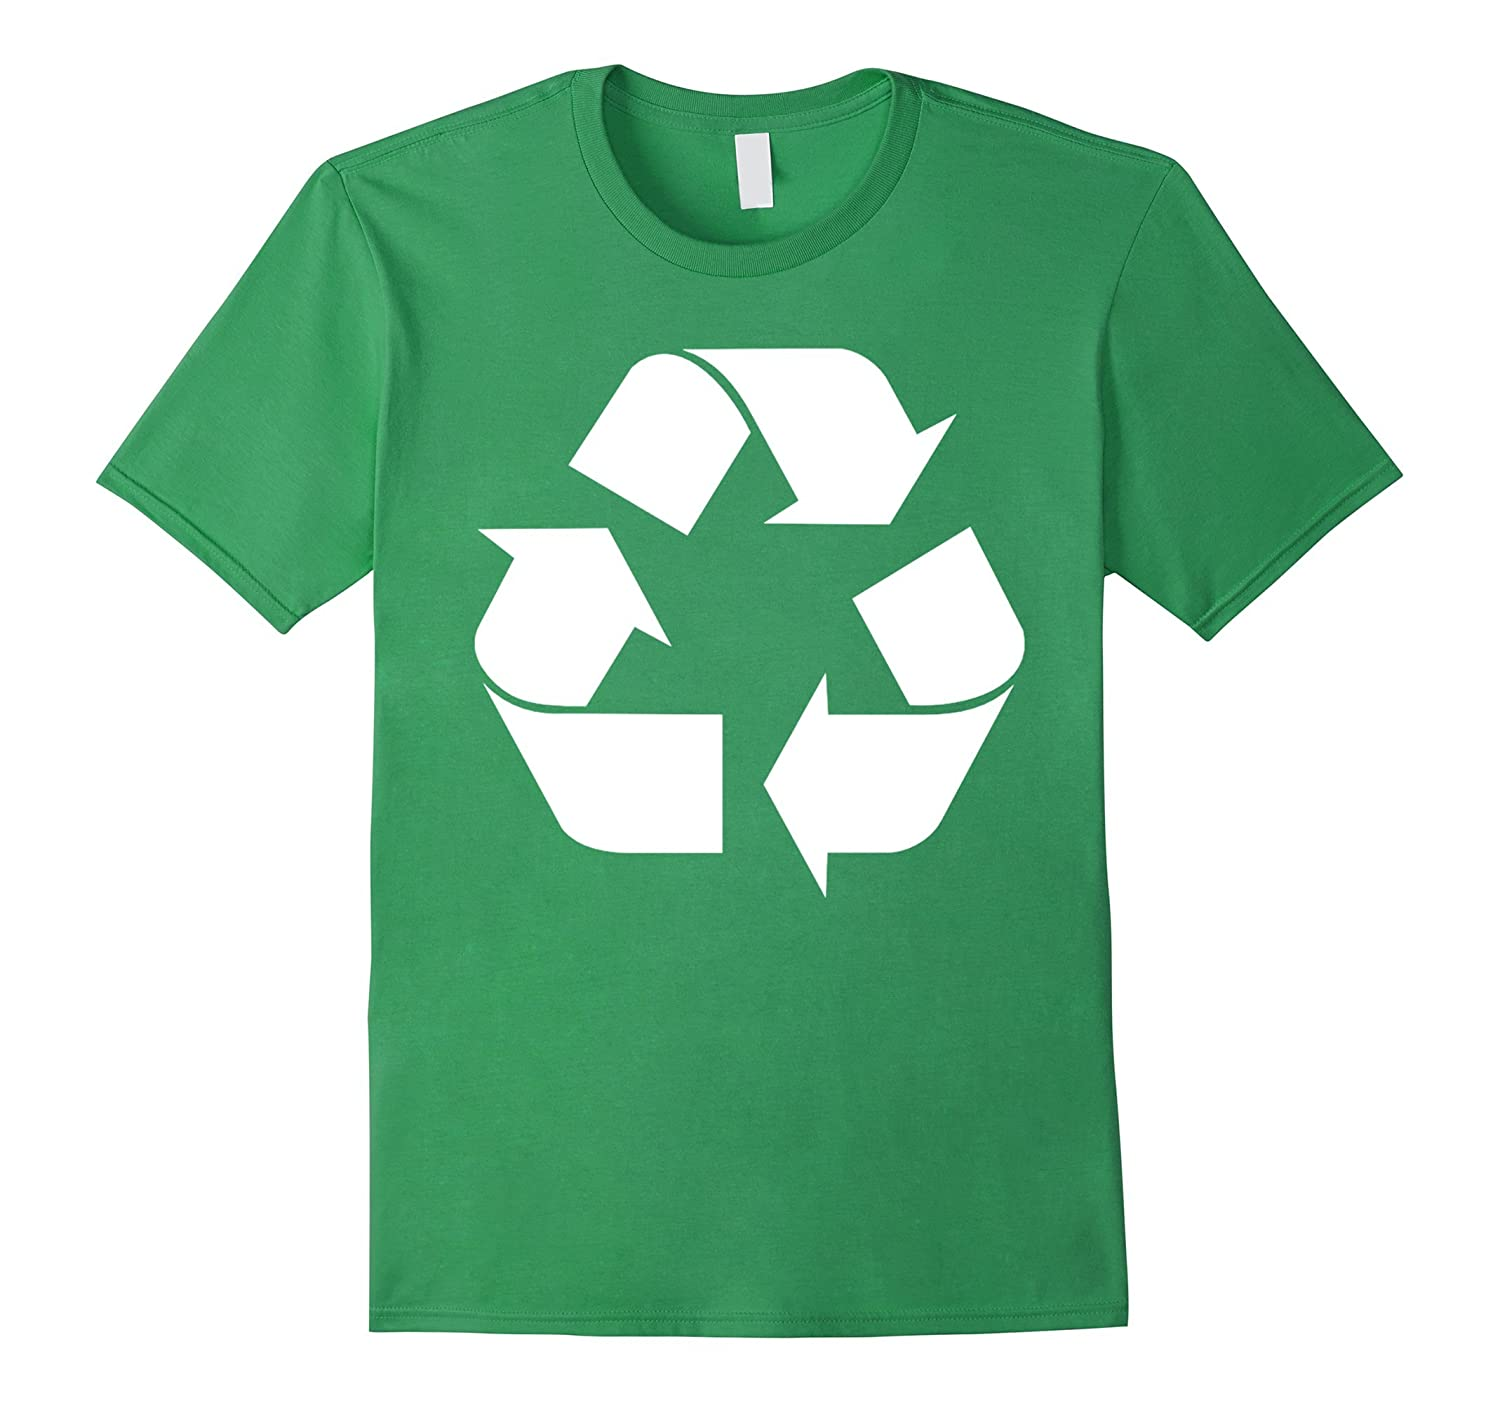 Recycle recycling eco friendly waste sign symbol t shirt for Environmentally friendly t shirts